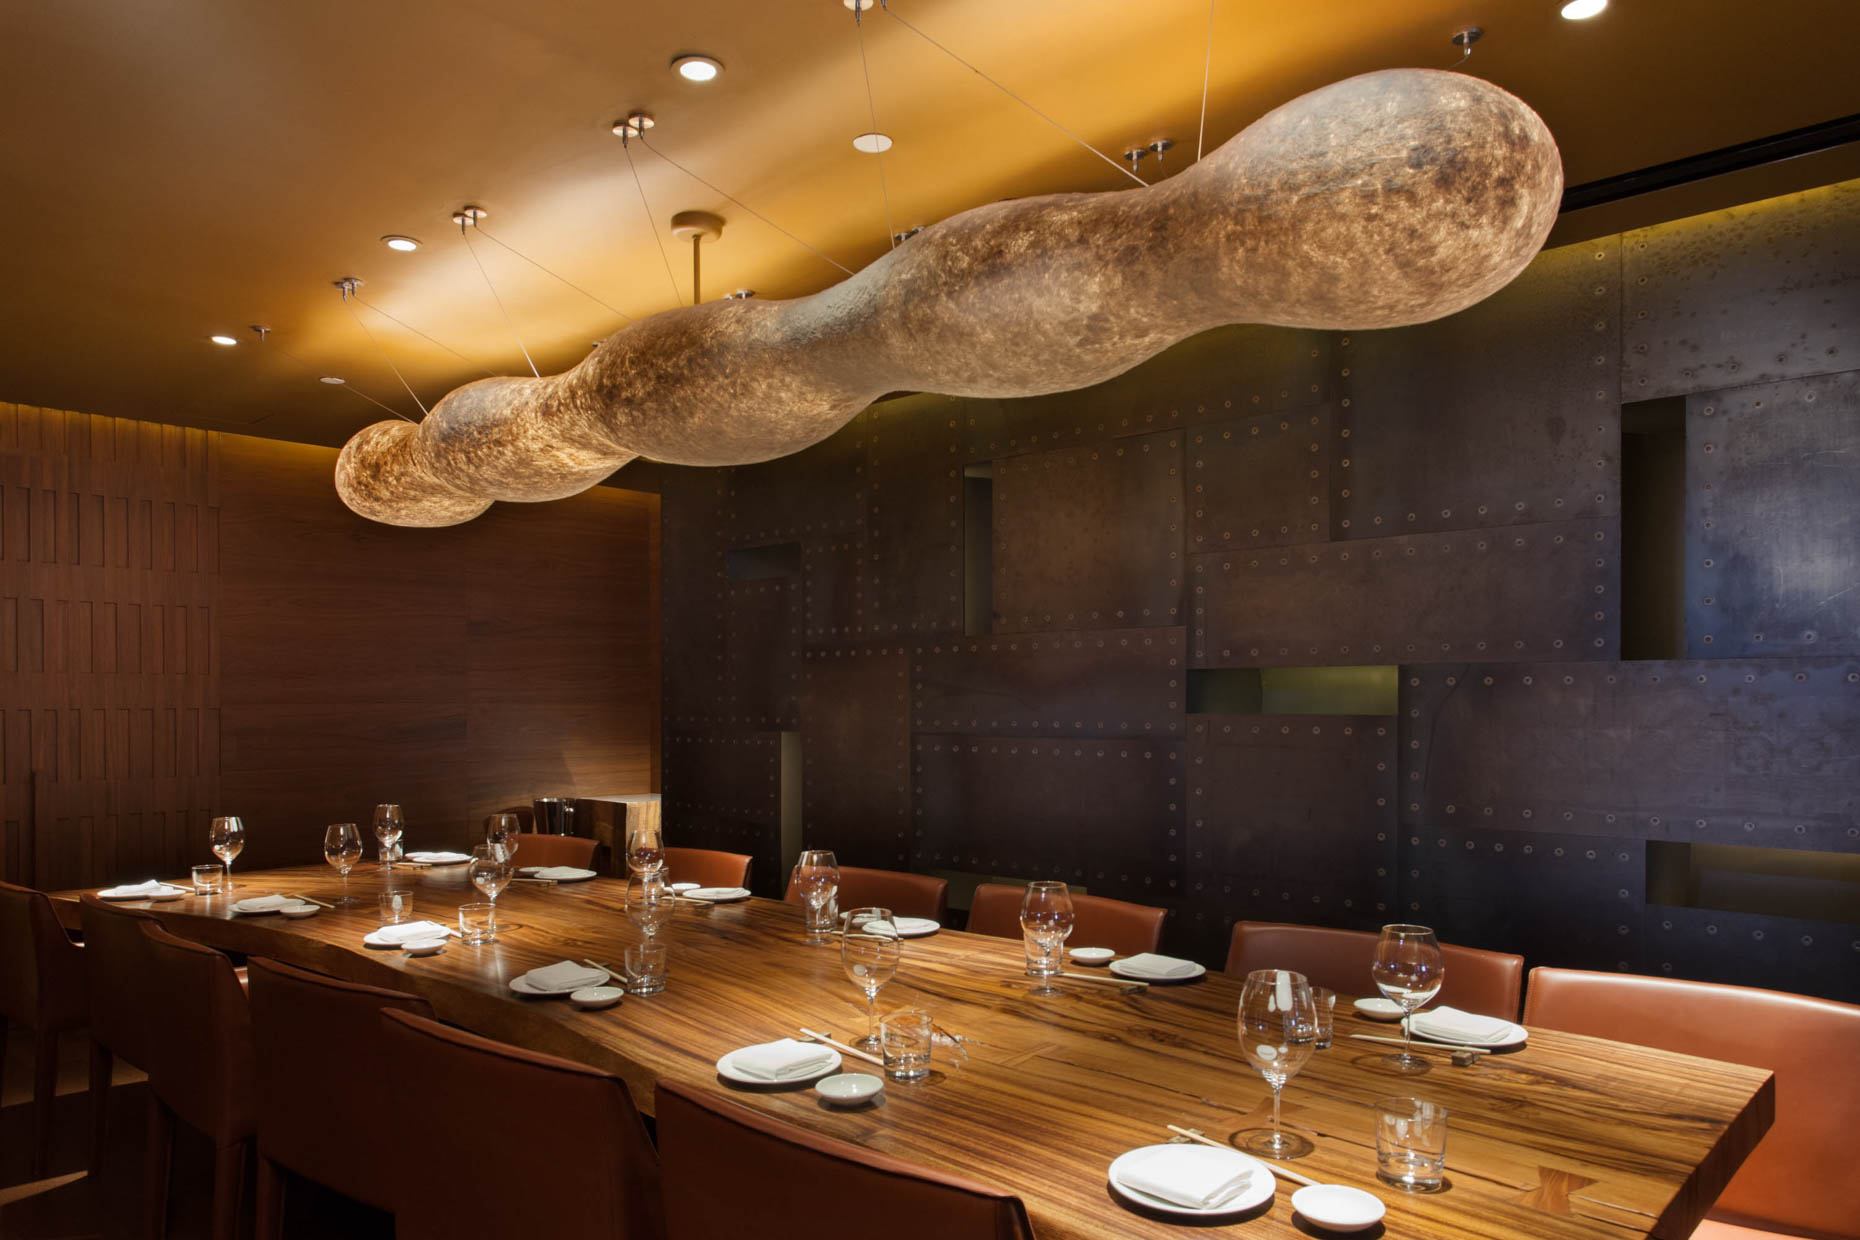 Restaurant Photography - Interior Photographer New York